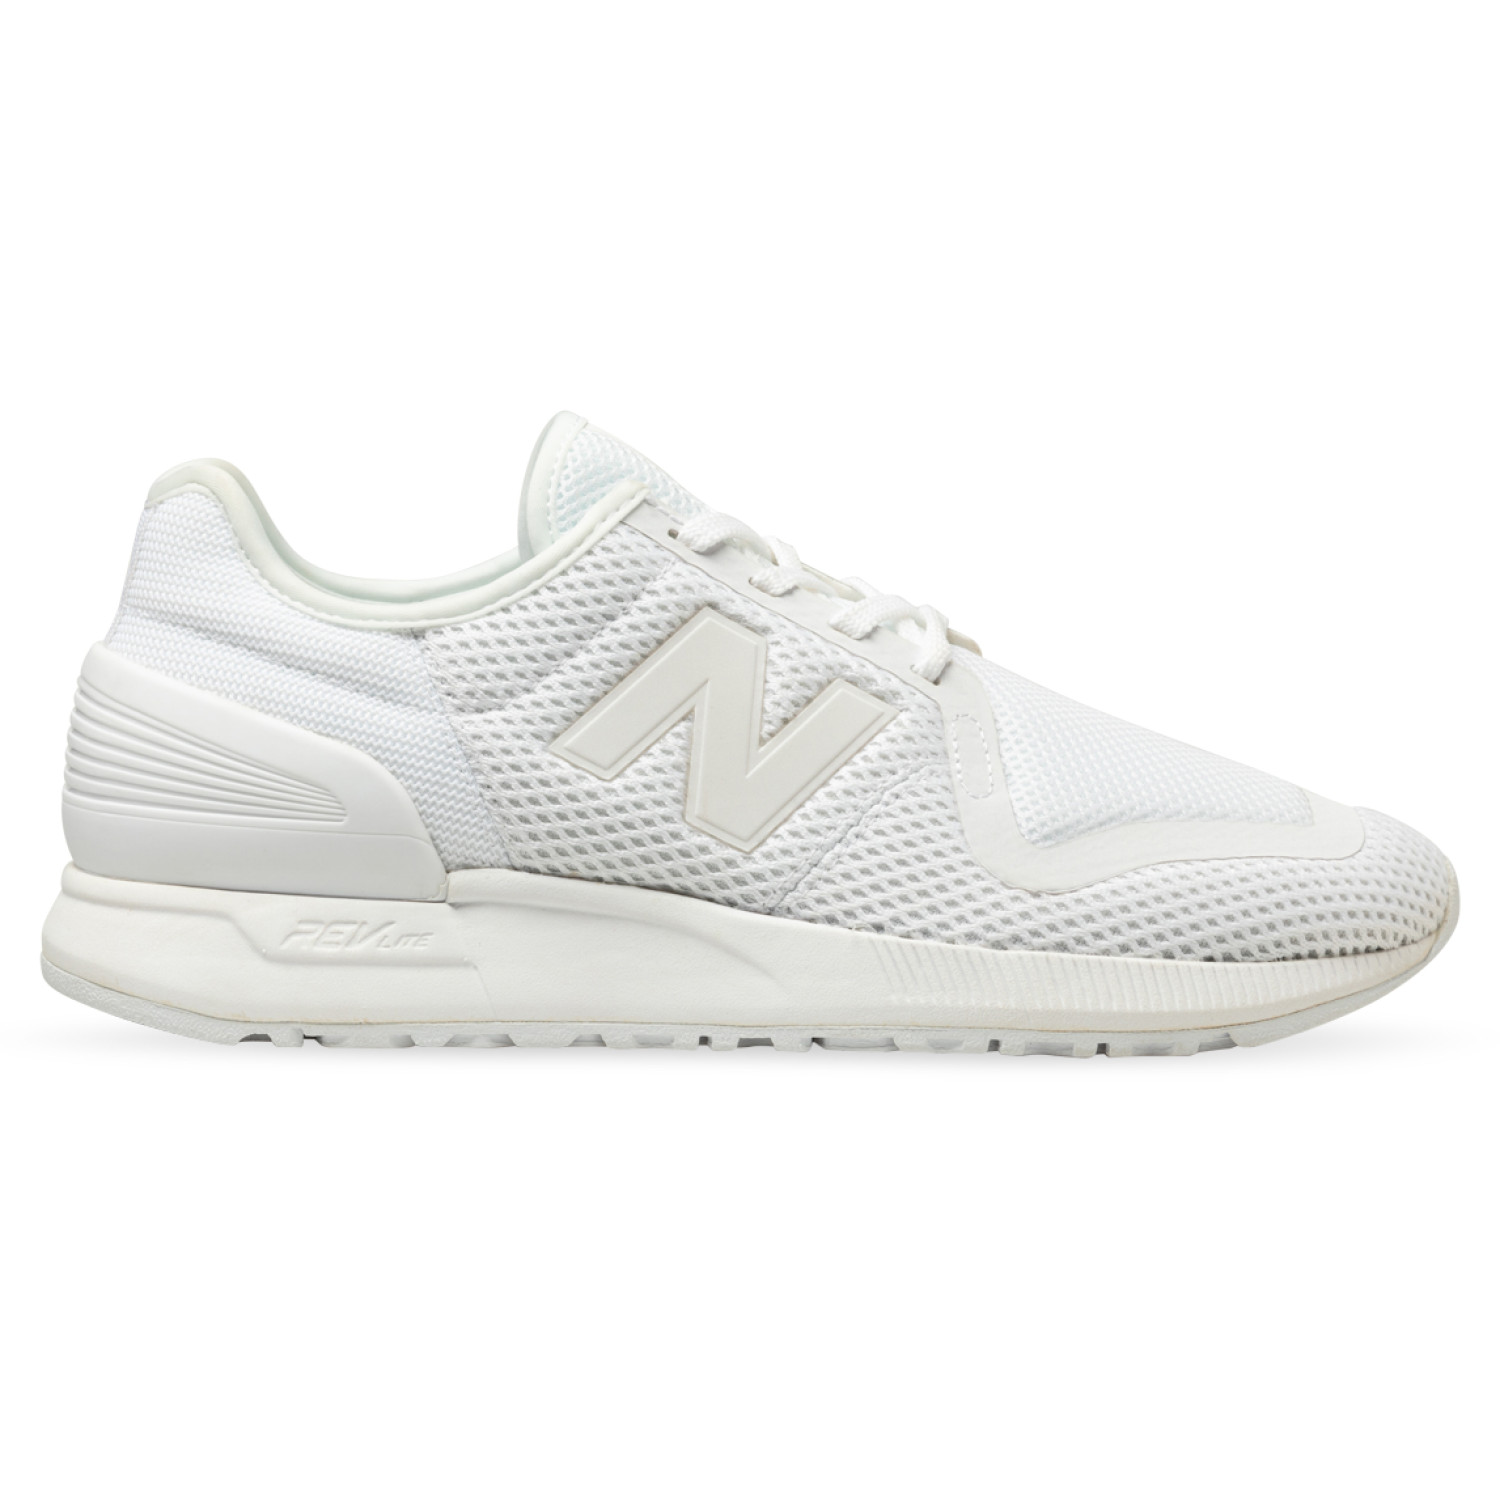 New Balance 247s - multiple styles & sizes available